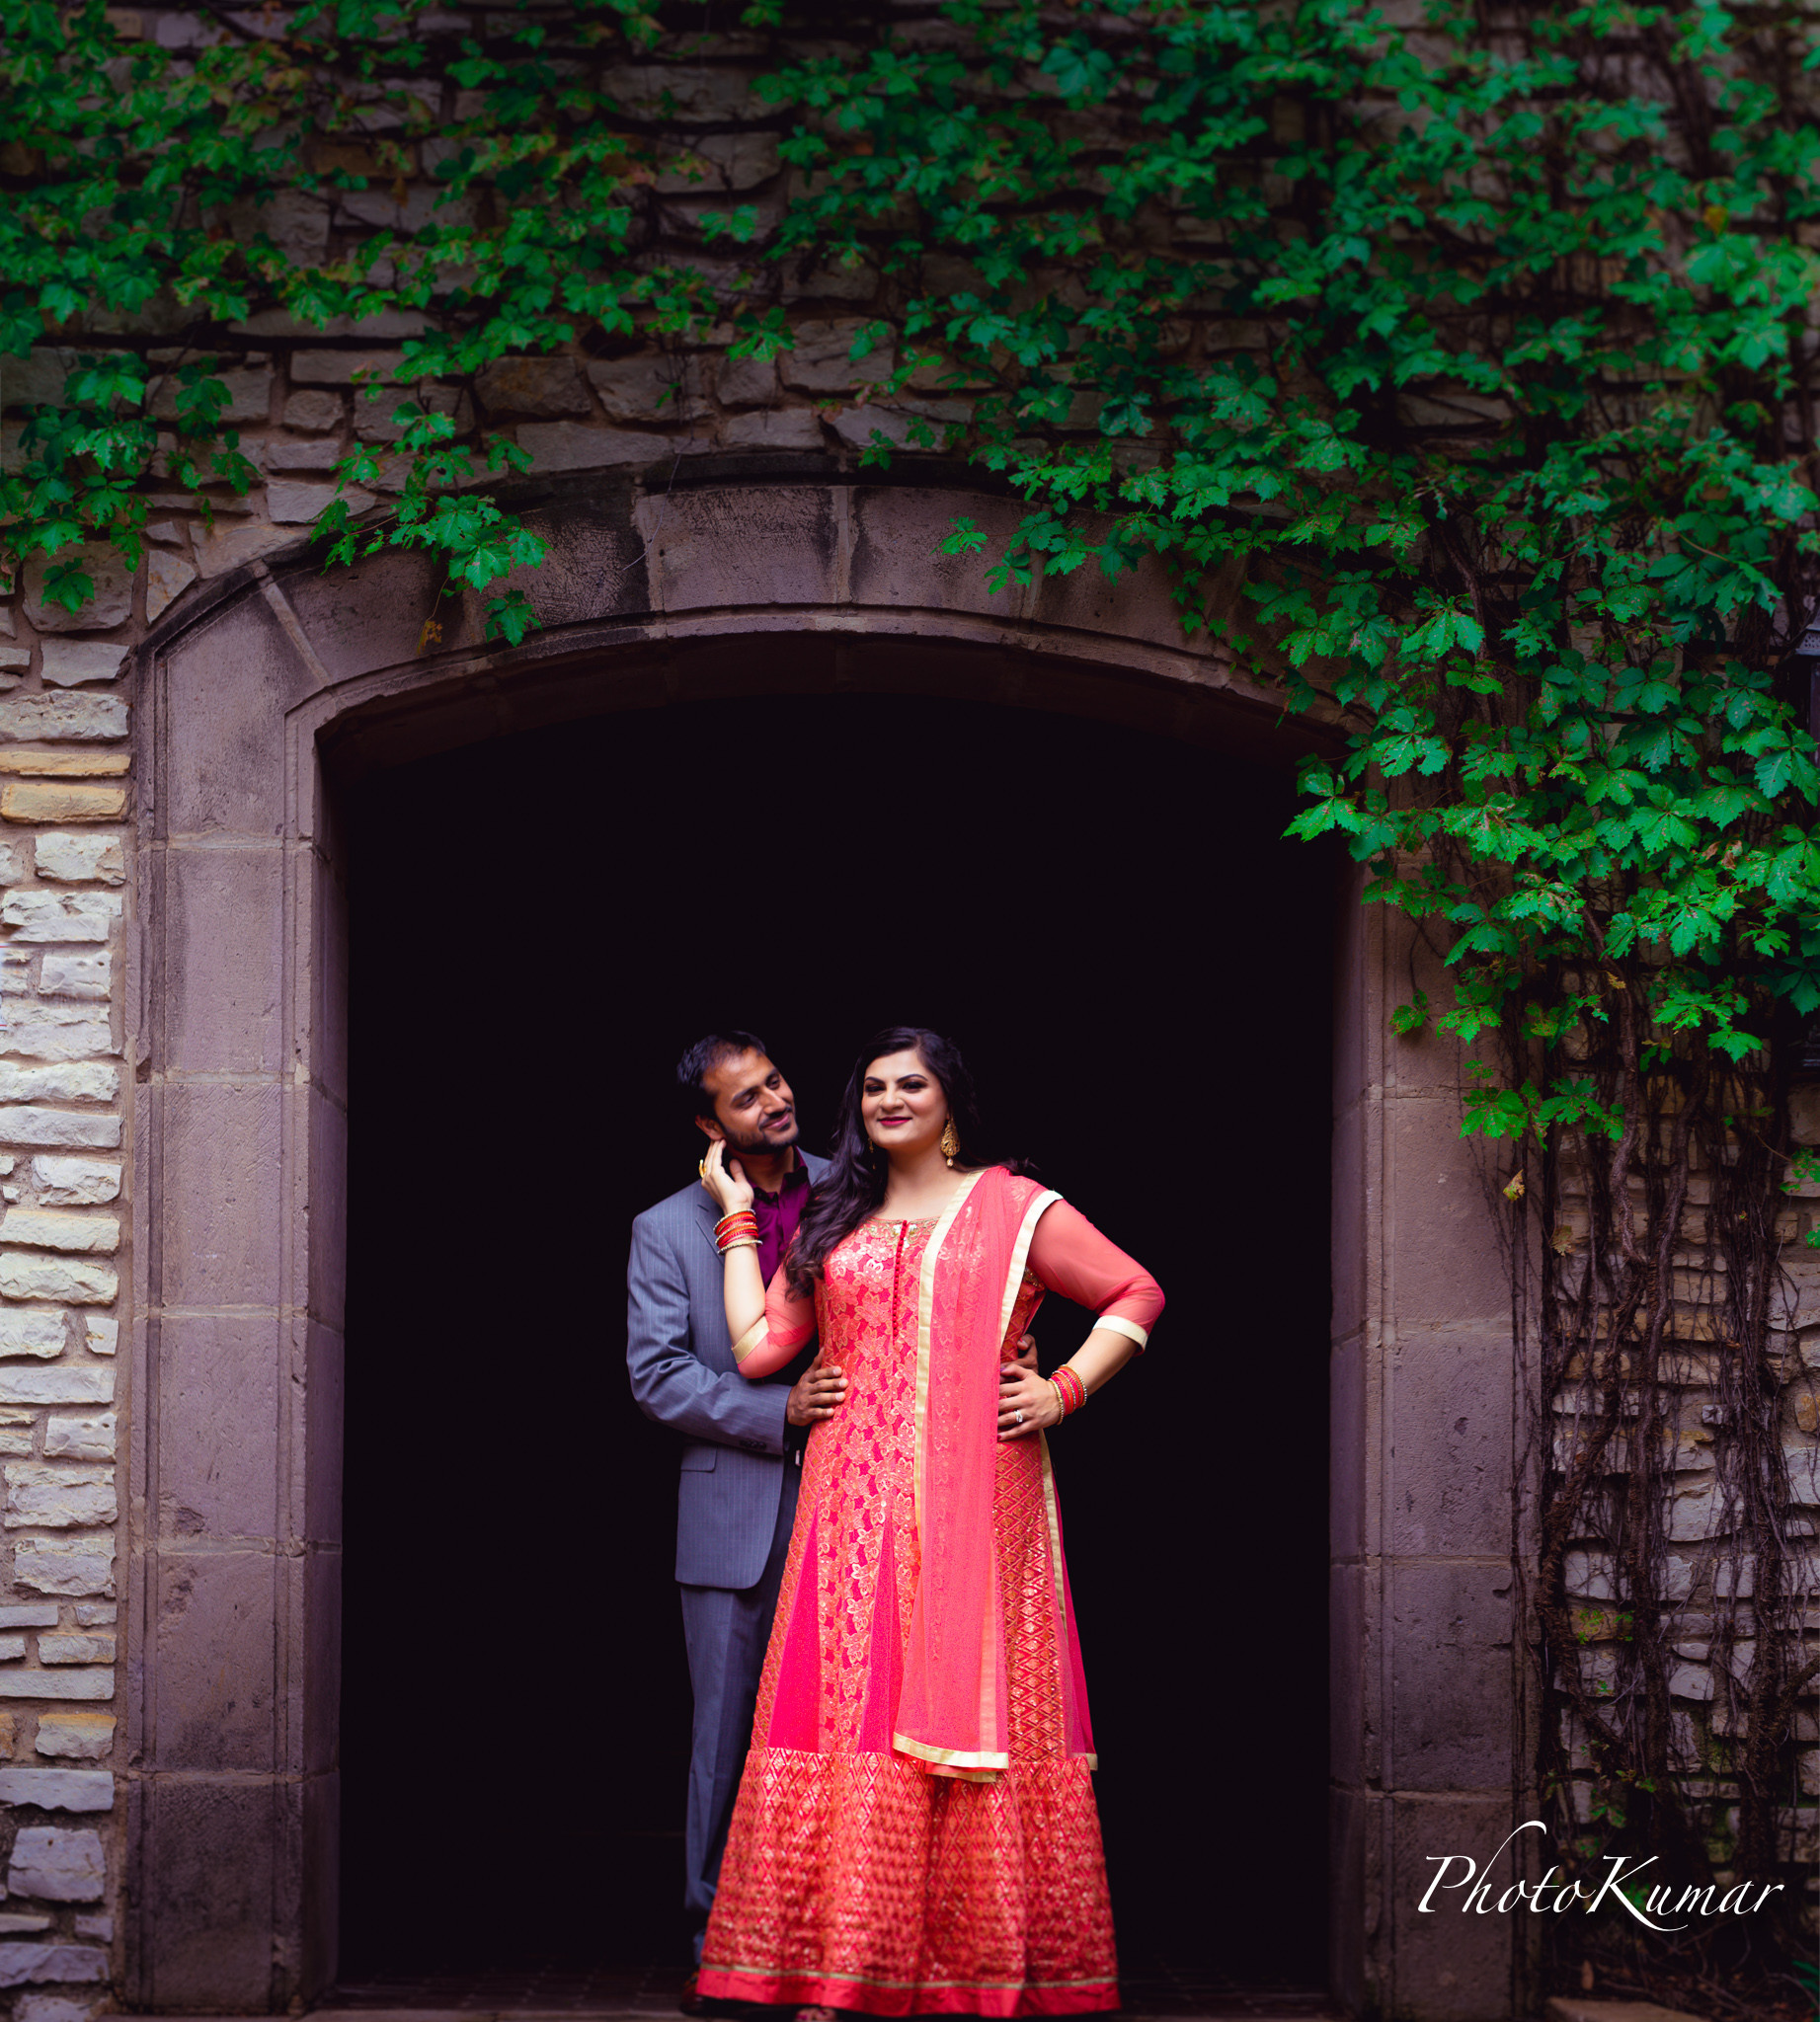 PhotoKumar-Anna and Riyaz-3.jpg